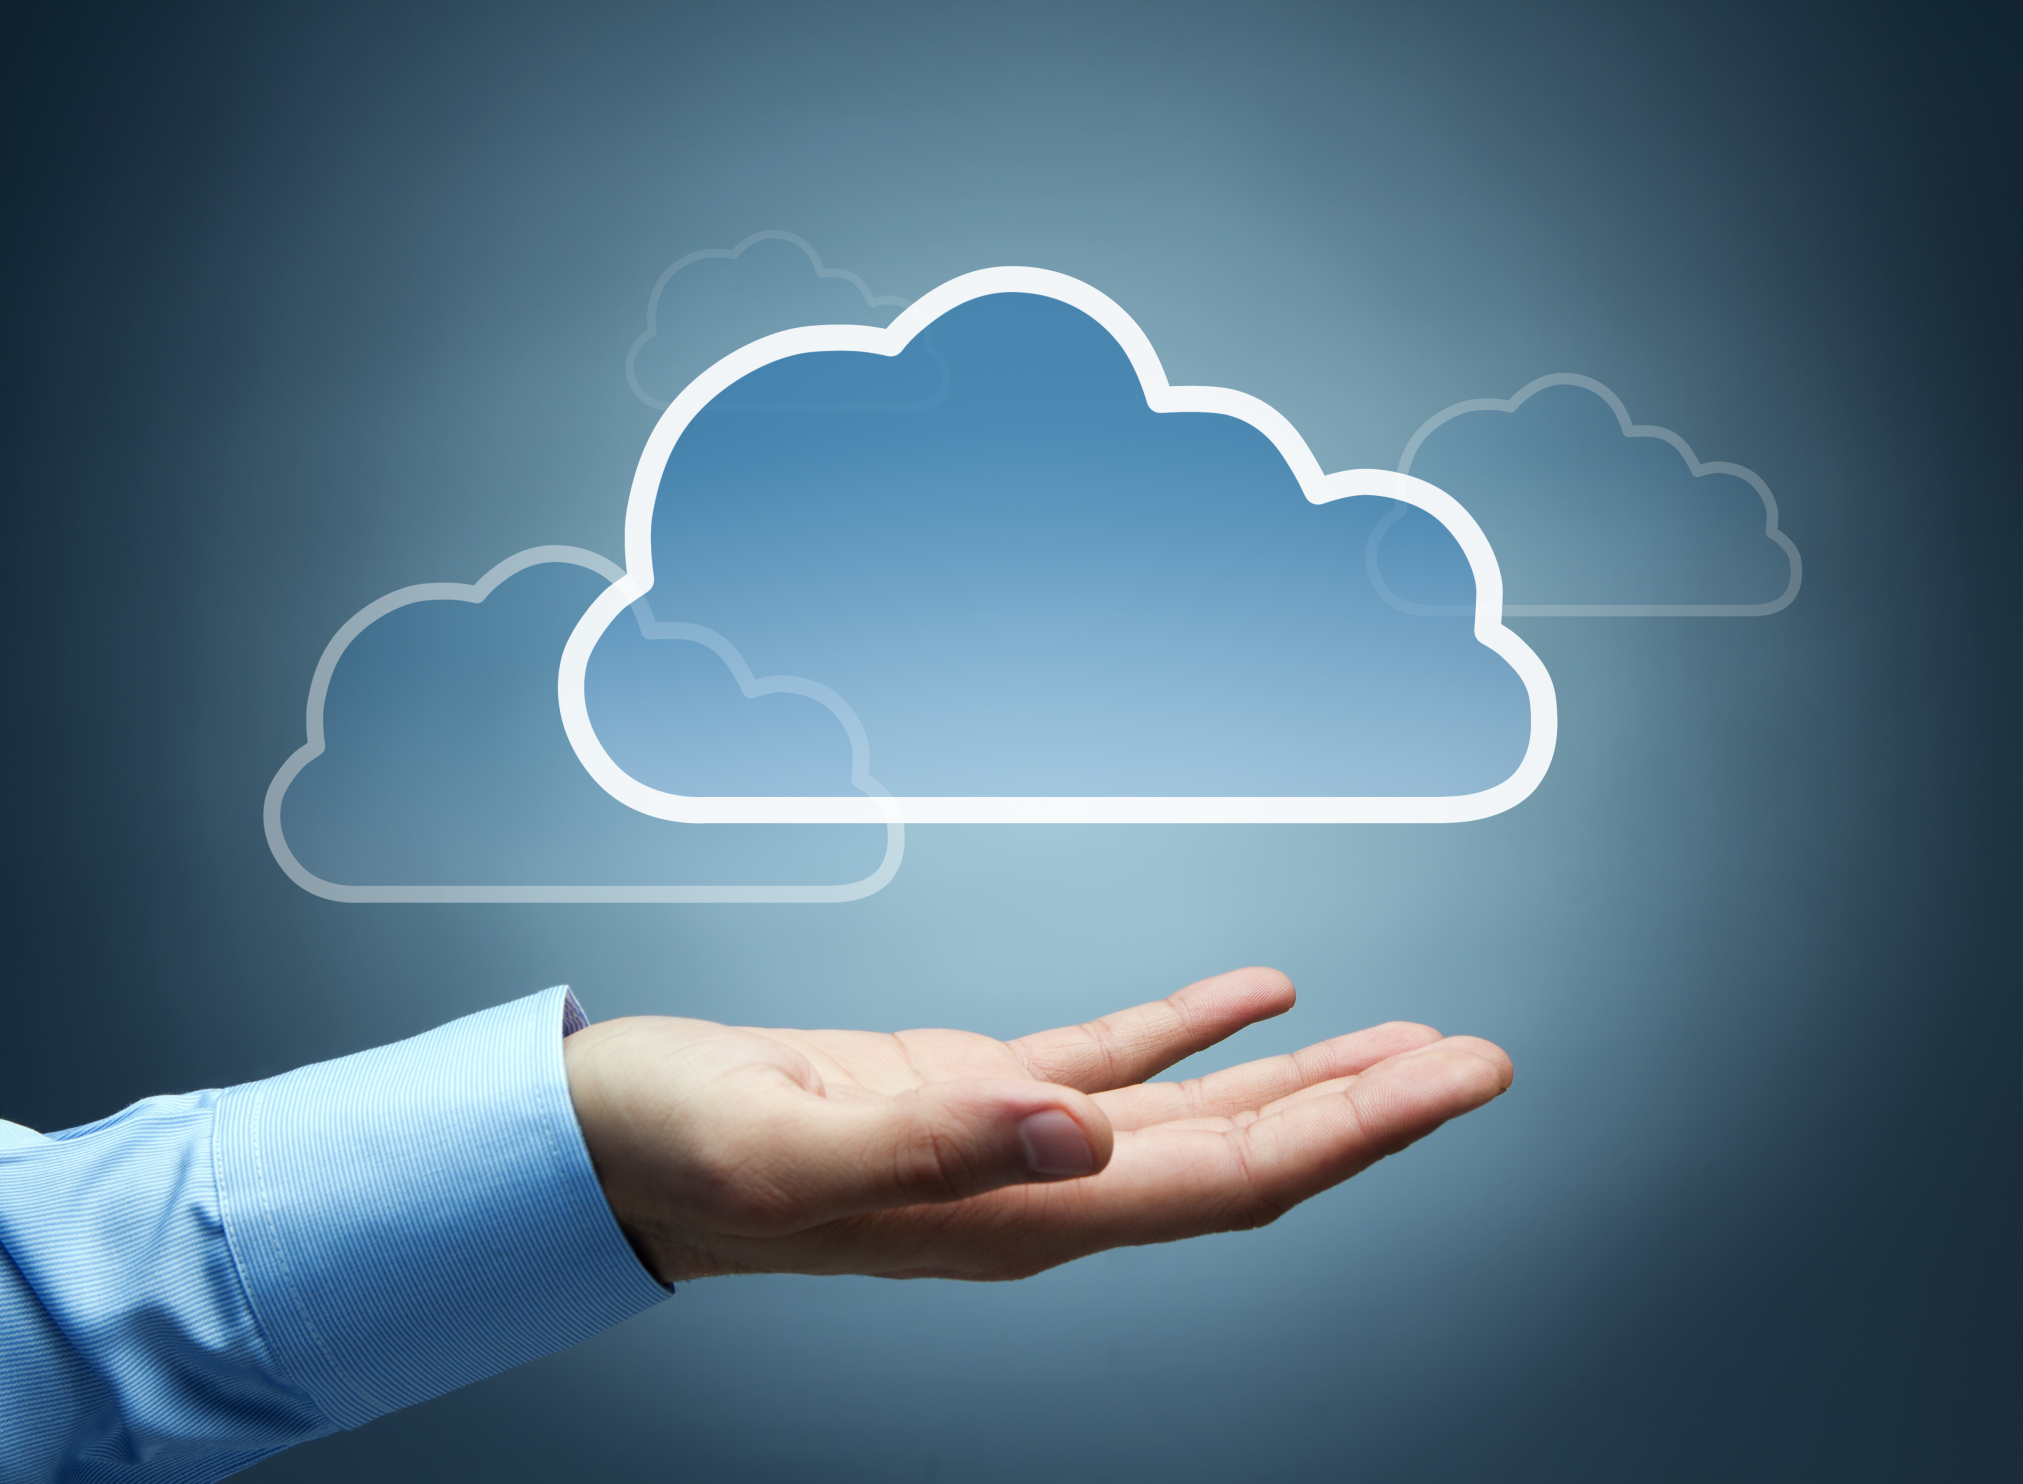 Top 10 cloud hosting service providers in the world: falconhive.com/top-10-cloud-hosting-service-providers-in-the-world